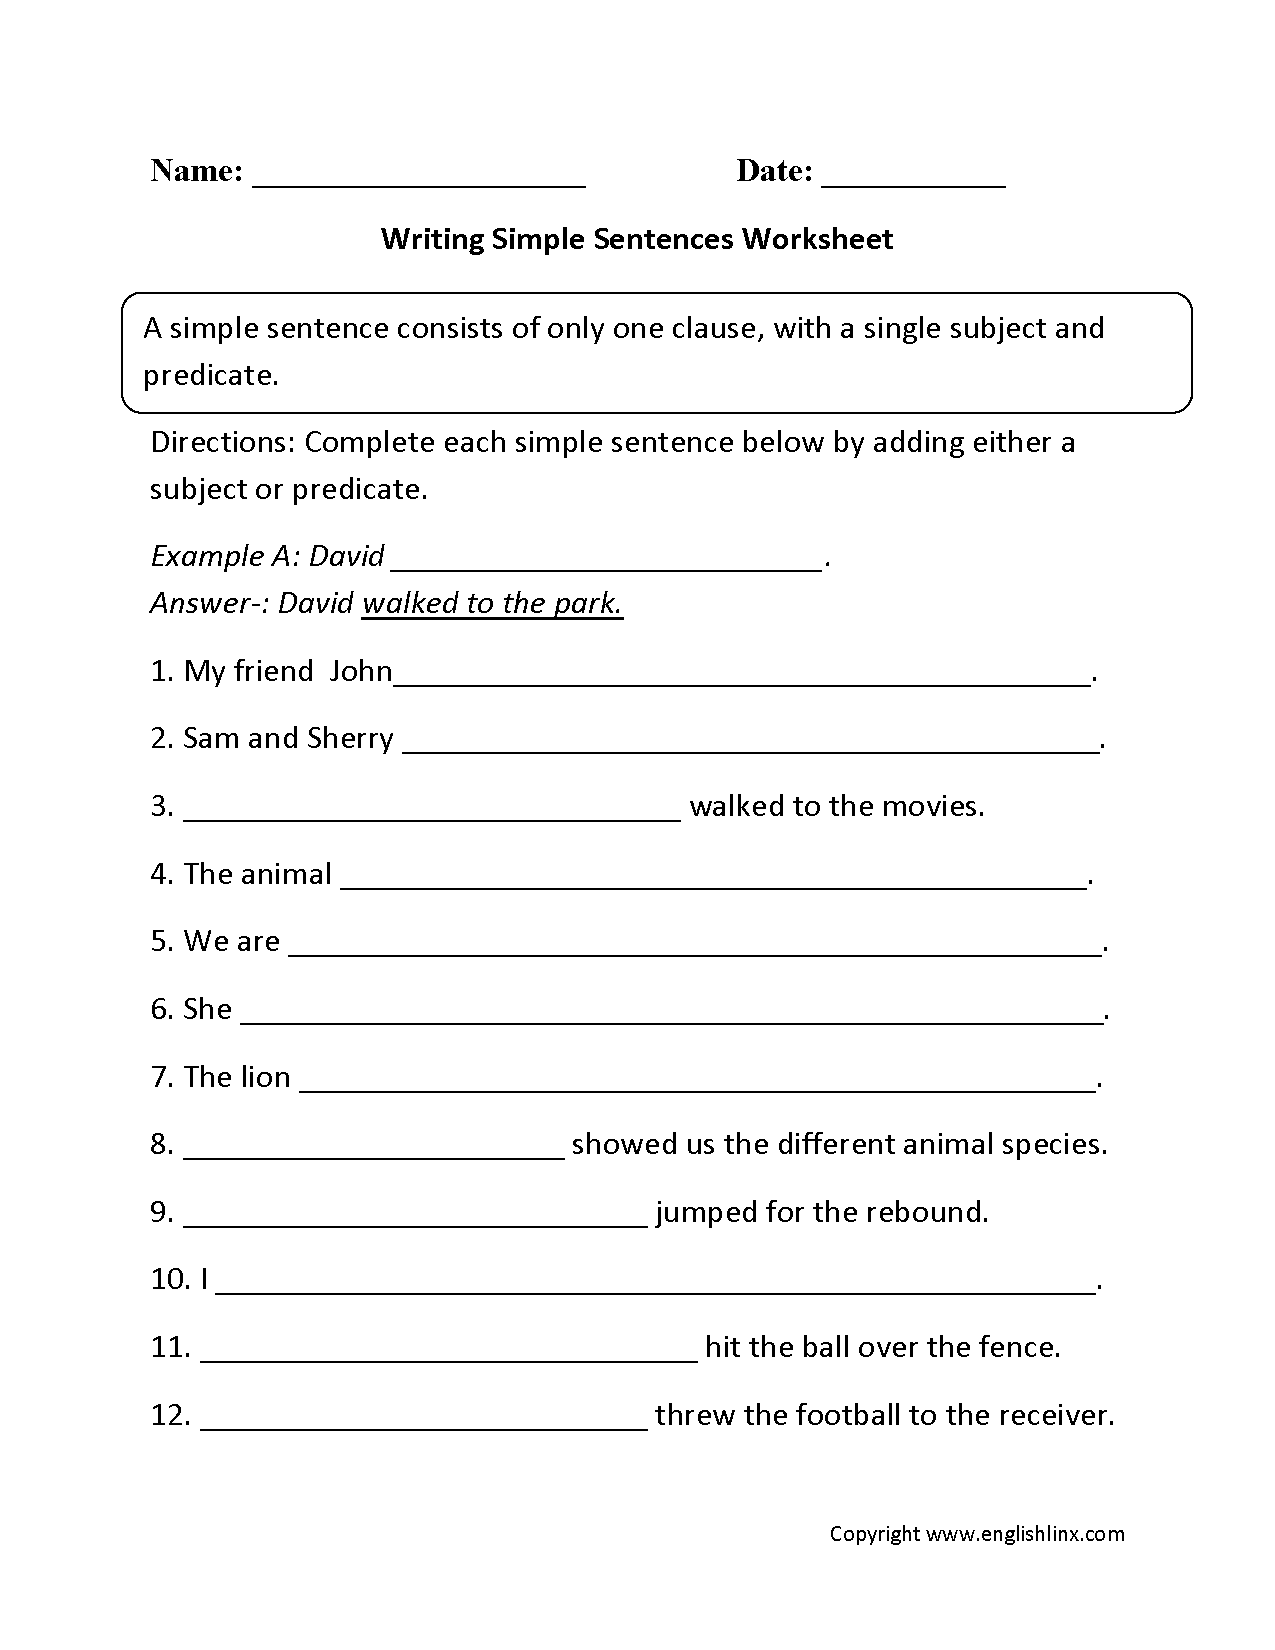 Writing Simple Sentences Worksheet Part 1 Beginner